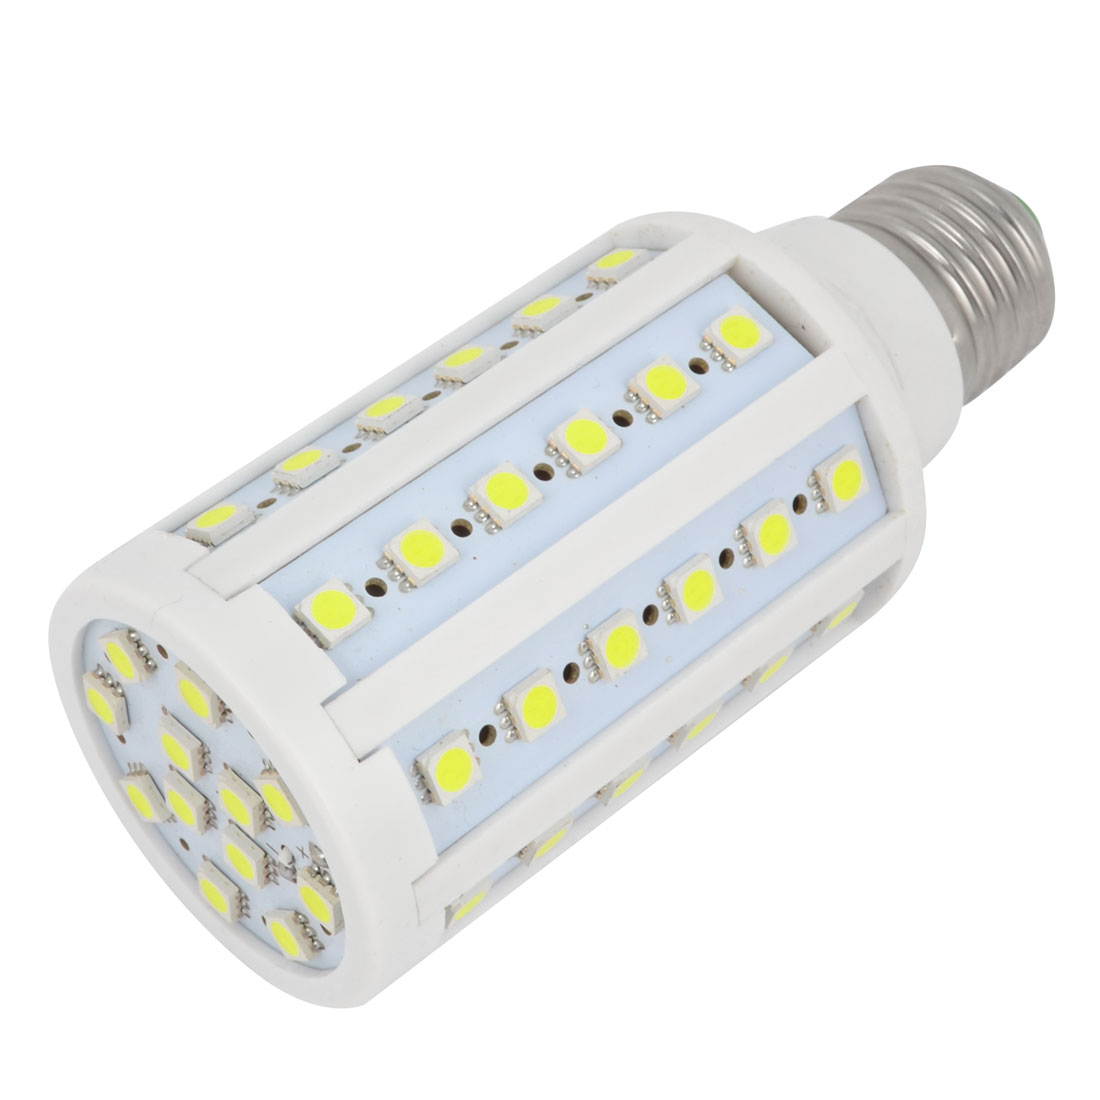 E27 Screw Base White 5050 SMD 60 LED Bulb Lamp Light 110V 12W 1080Lm